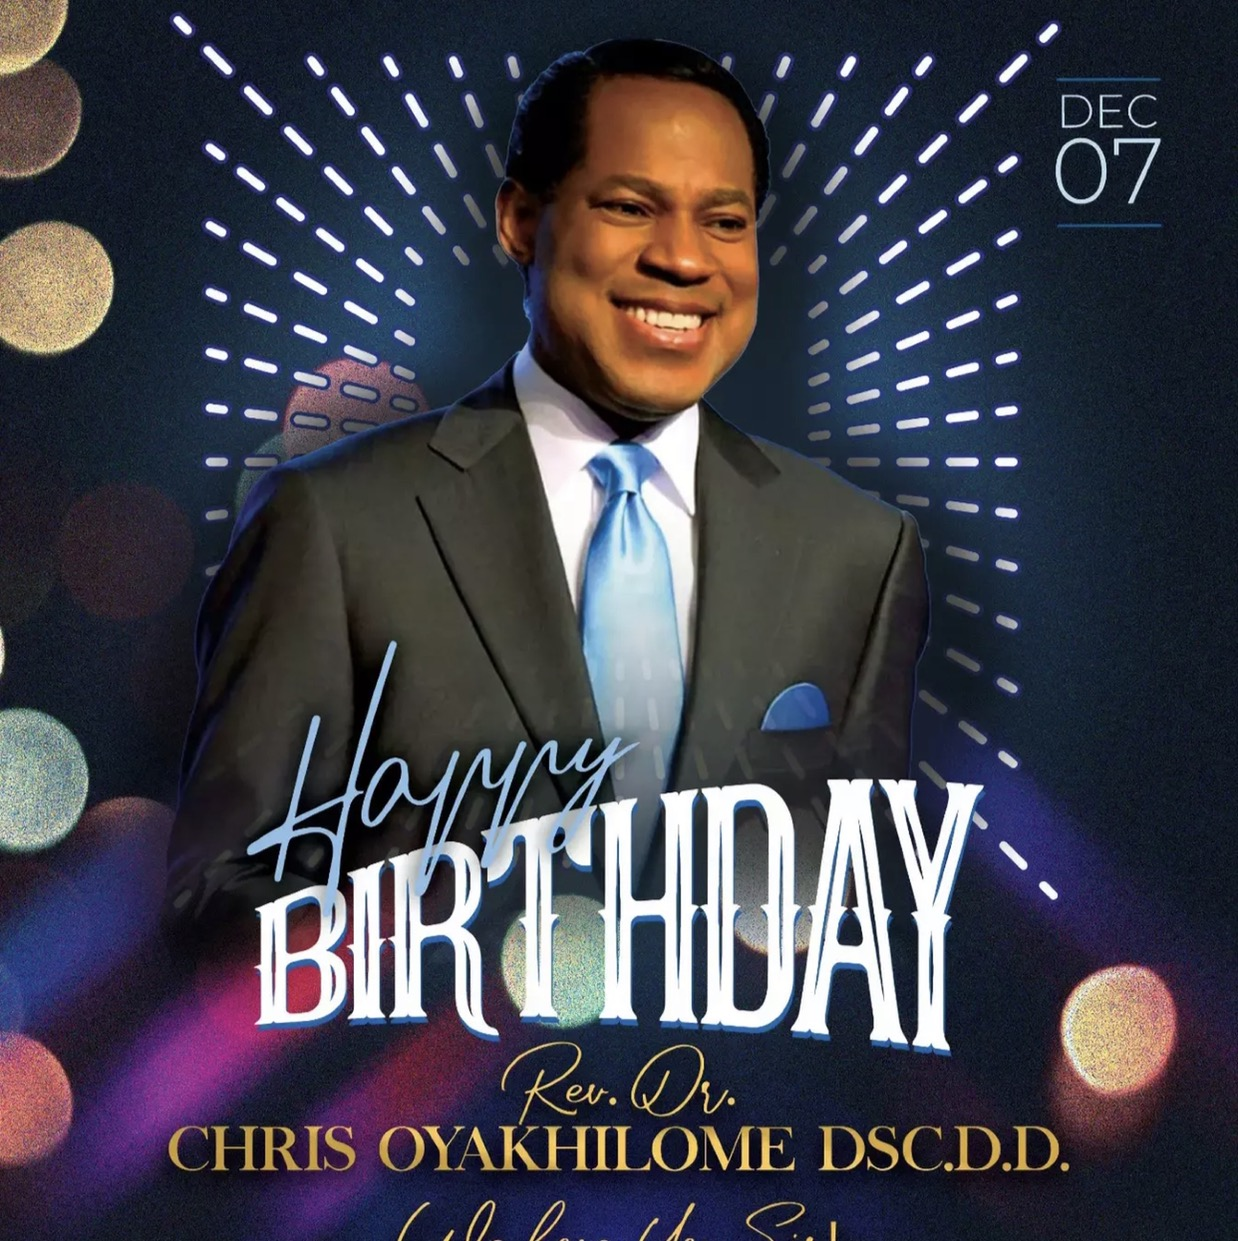 HappyBirthday to God's oracle. My